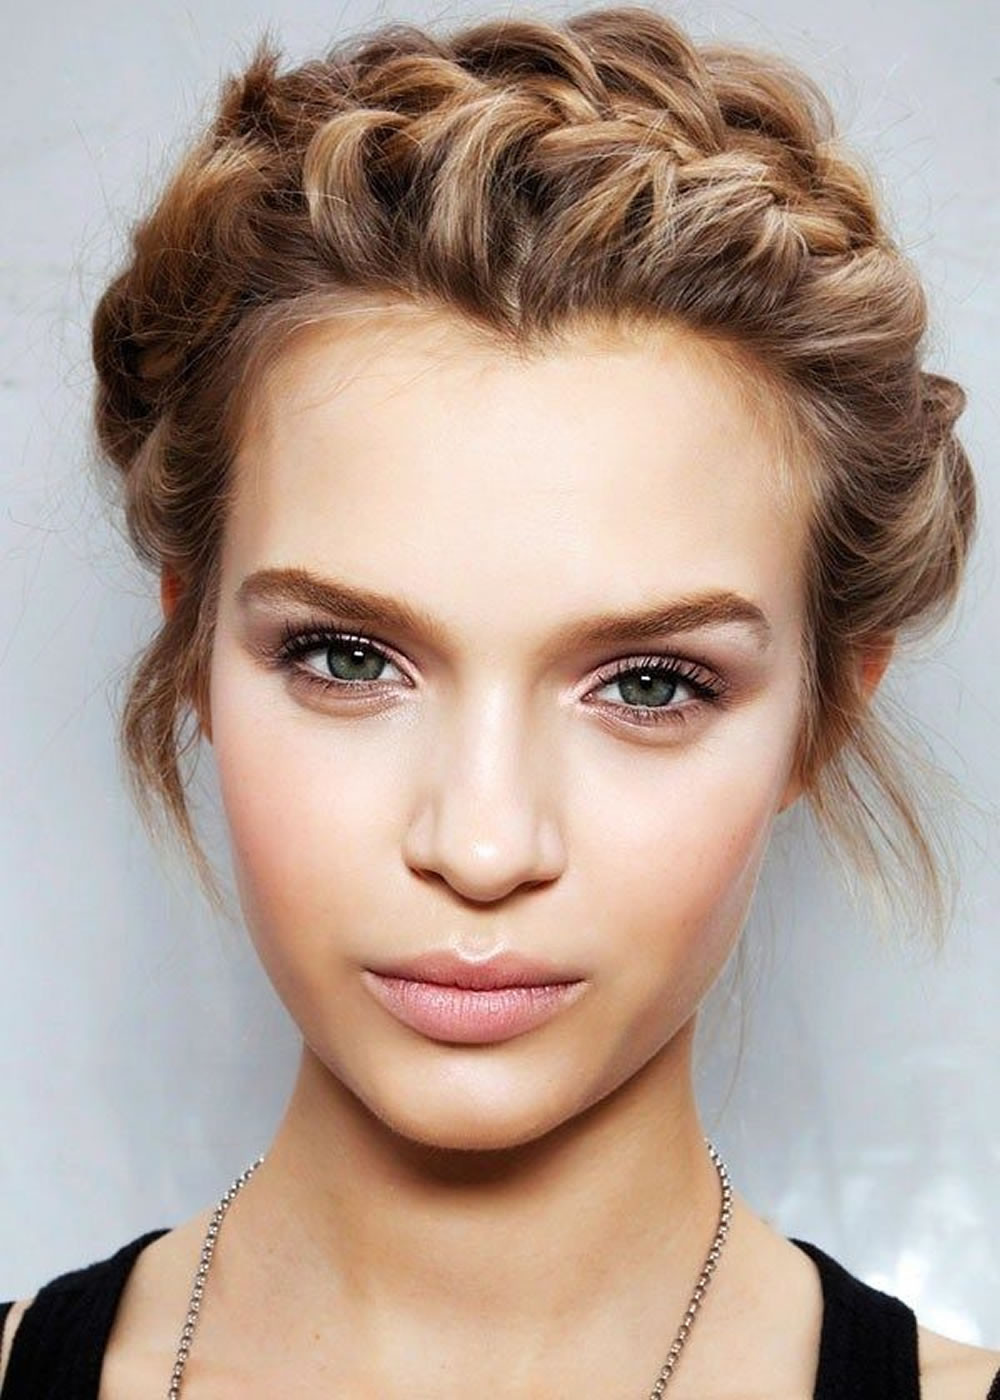 Best ideas about Hairstyle 2019 Female . Save or Pin 25 Very Stylish Soft Braided Hairstyles ideas 2018 2019 Now.